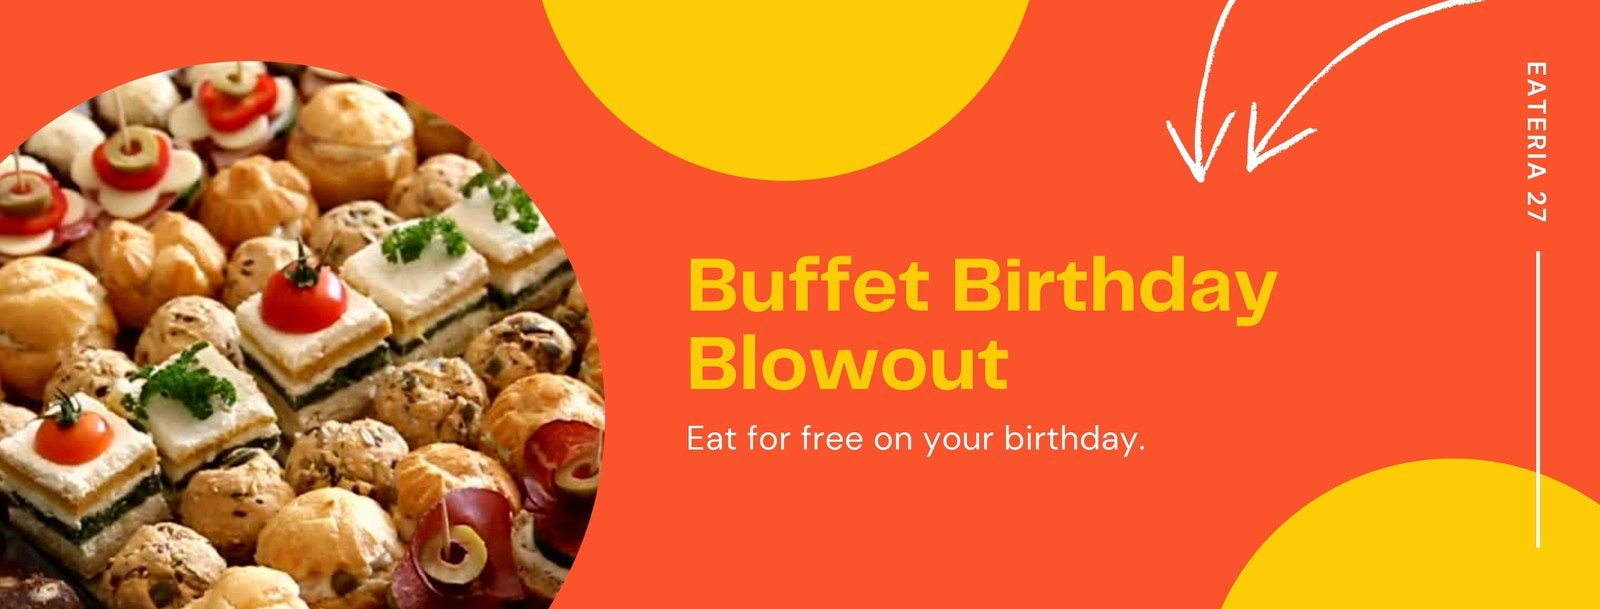 Orange and Yellow Graphic / Illustrated Birthday Promo Facebook Cover